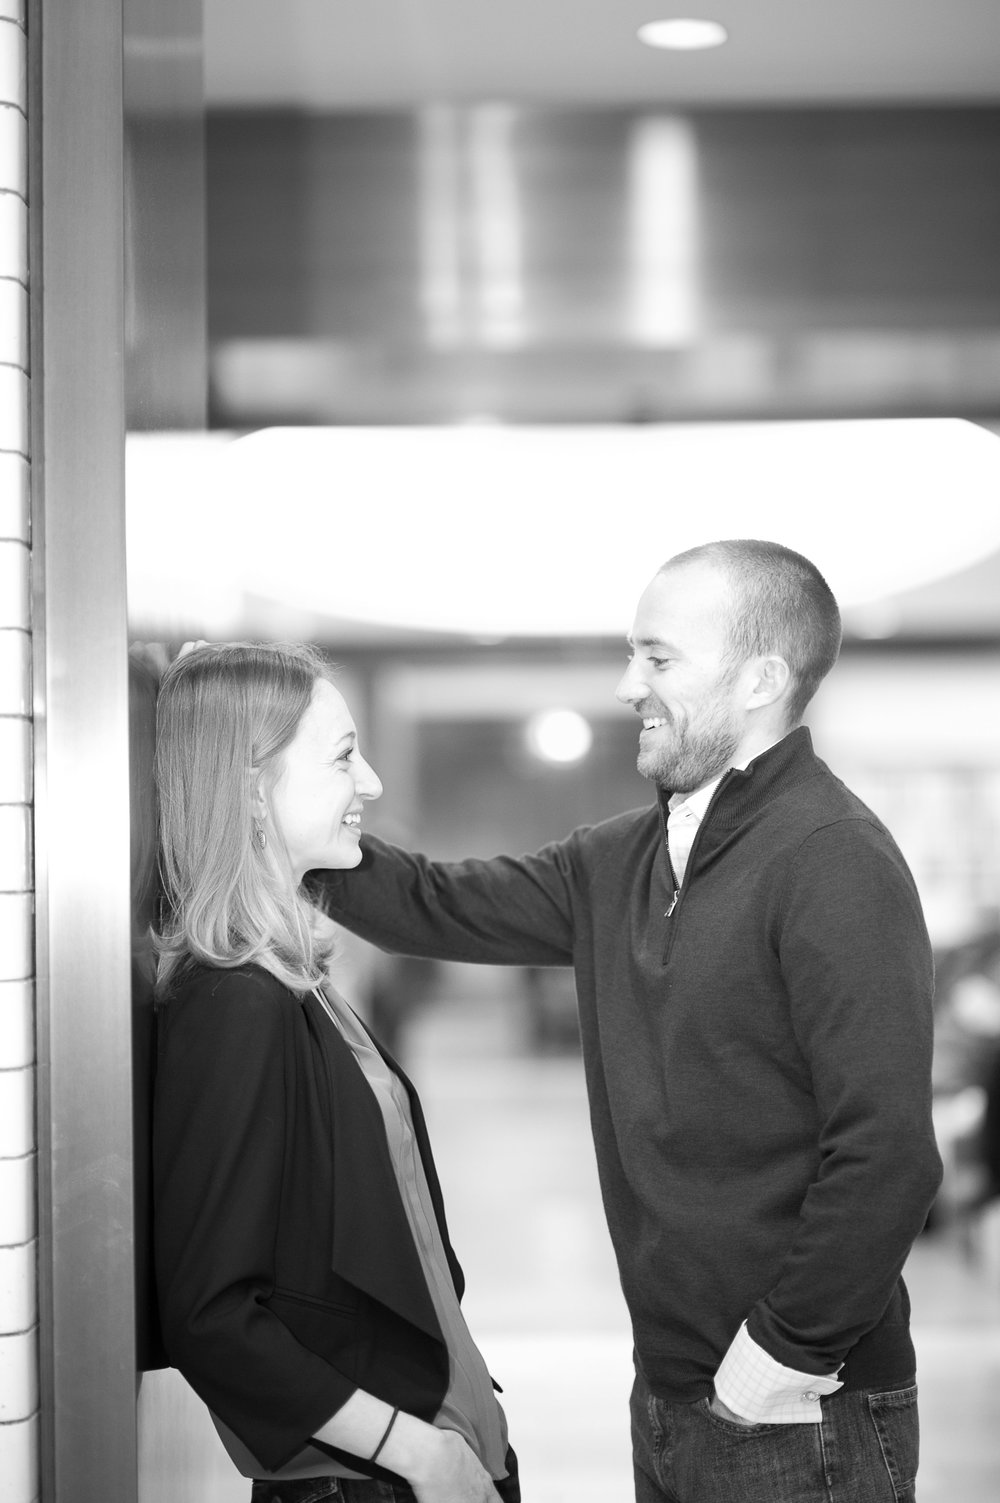 St. Louis Engagements by Christa Donald Photography_33.jpg